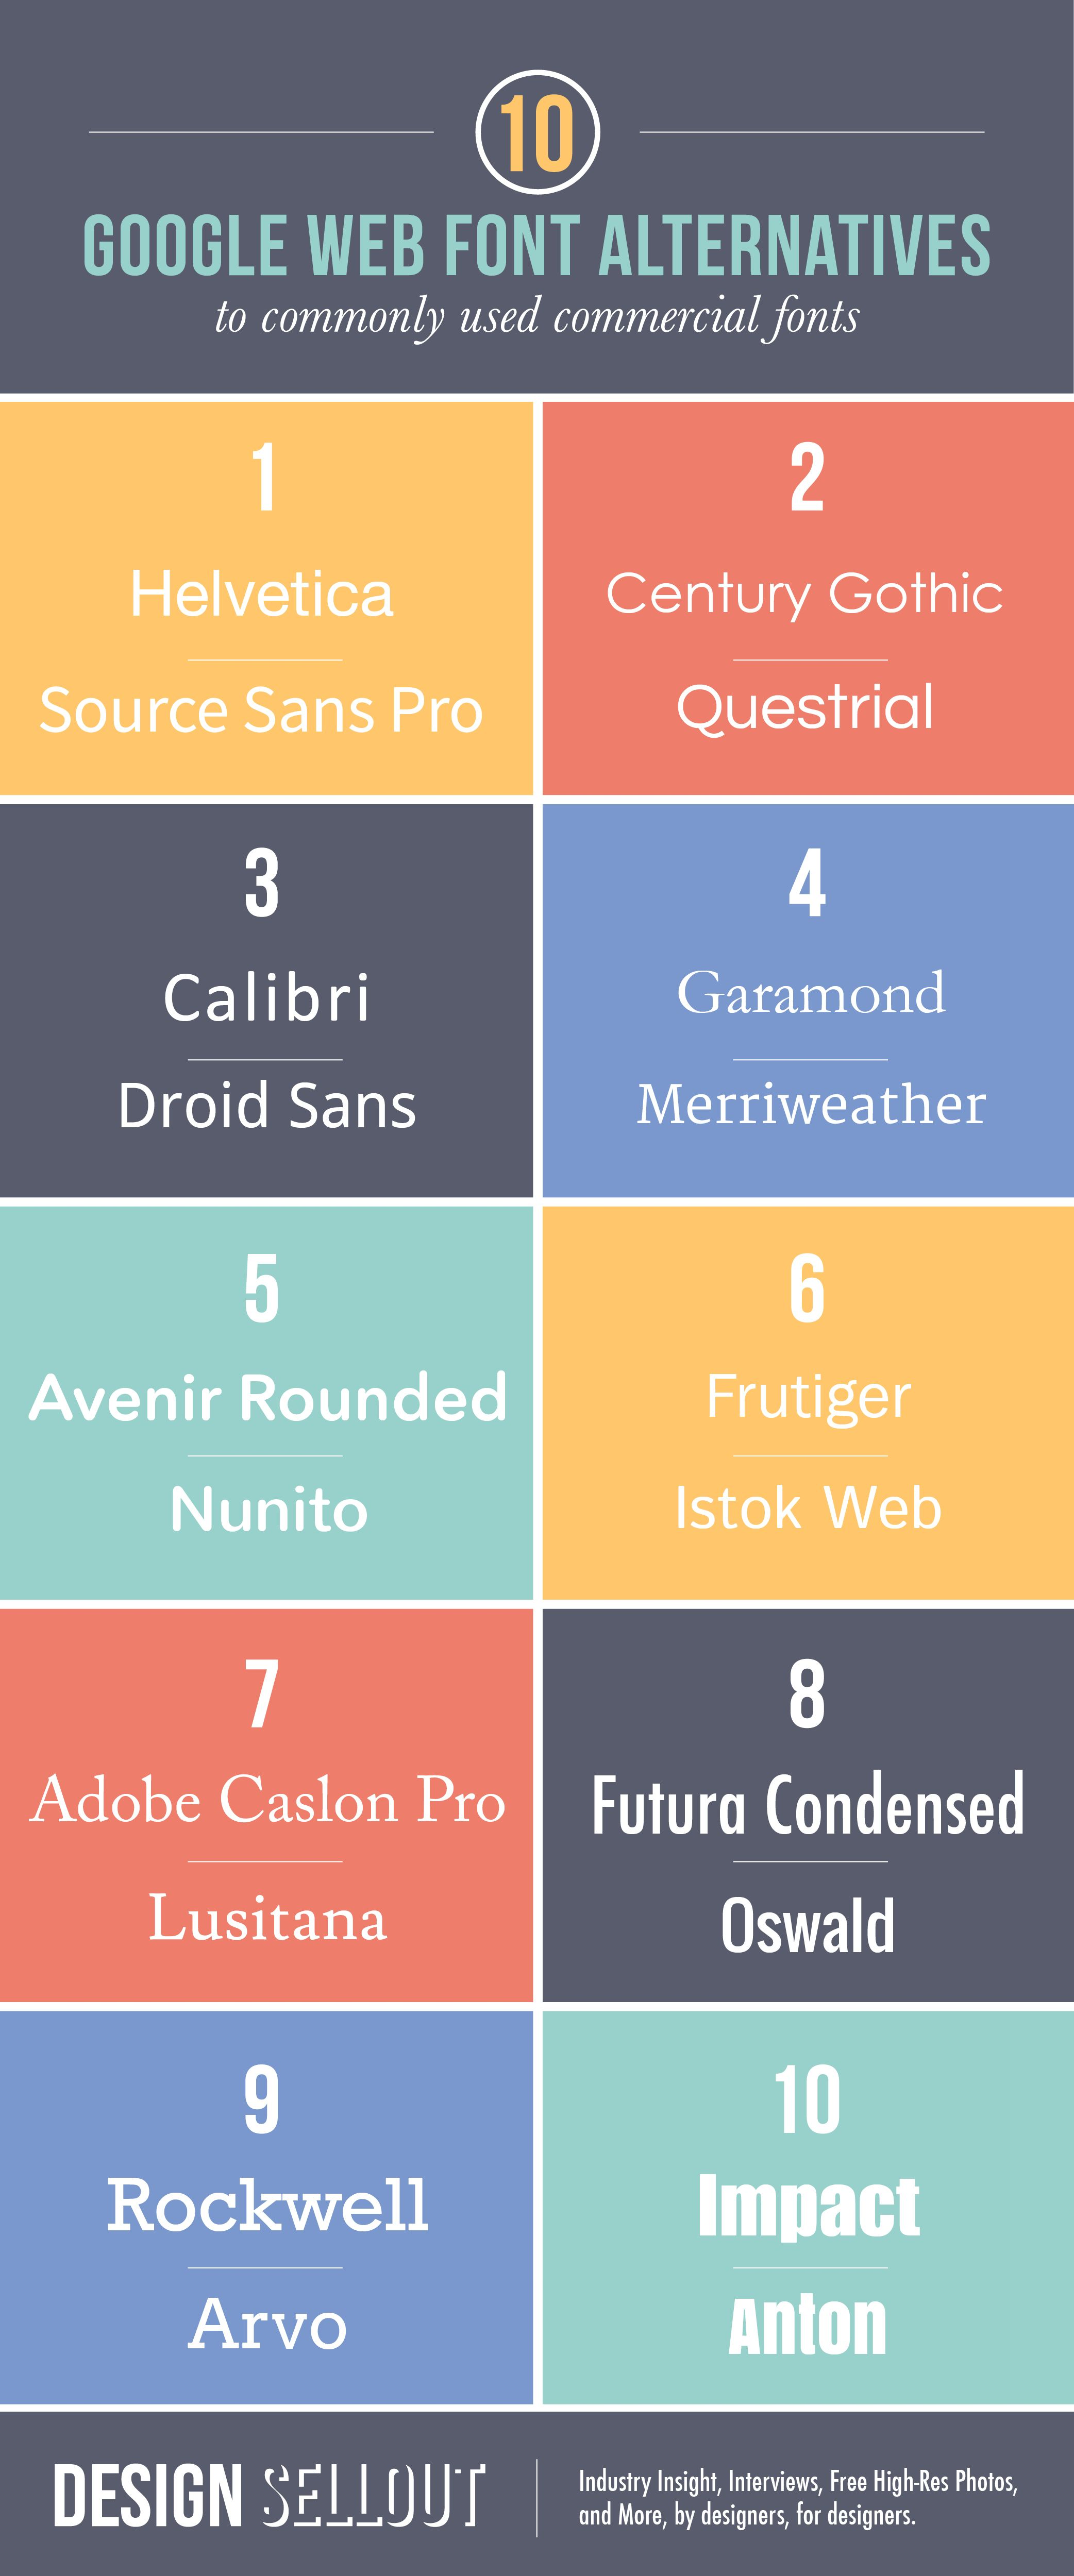 Ten of the most common commercial fonts have close Google